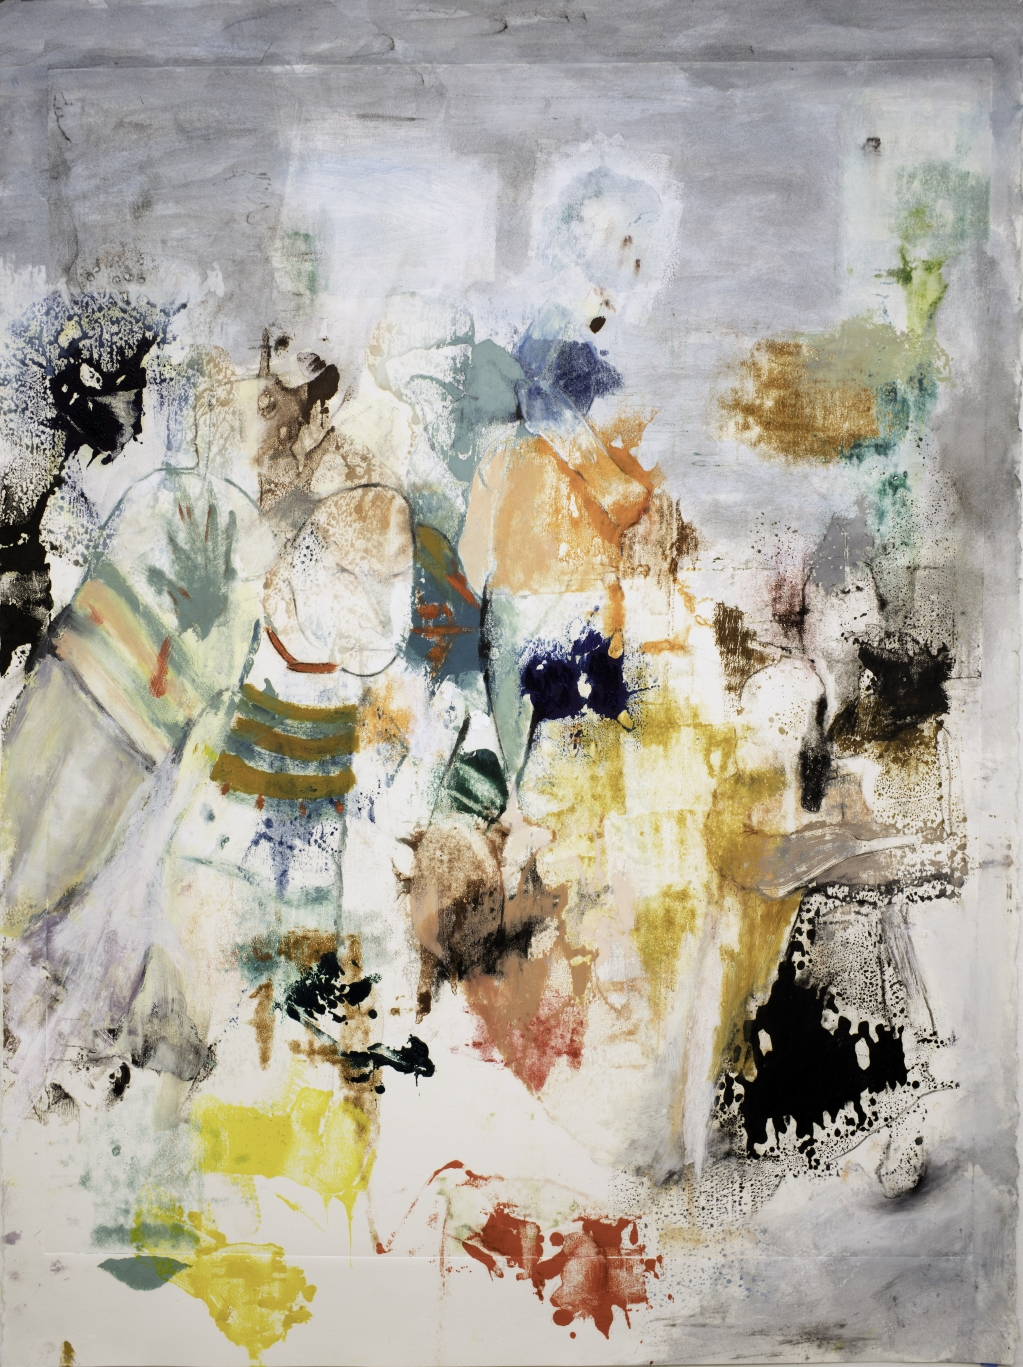 oil paint, oil sticks and colored pencil on paper work titled, Samarai by Sabina Klein